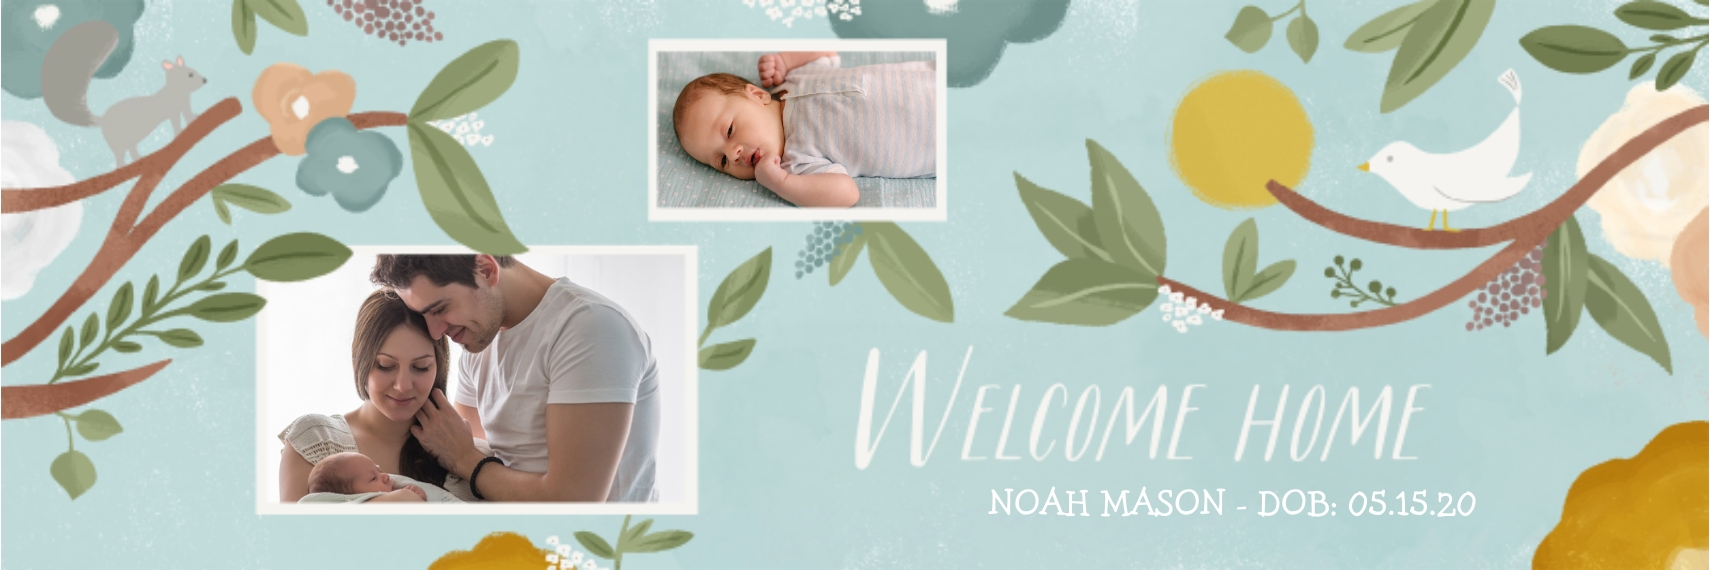 Baby + Kids 1x3 Adhesive Banner, Home Décor -Watercolor Welcome